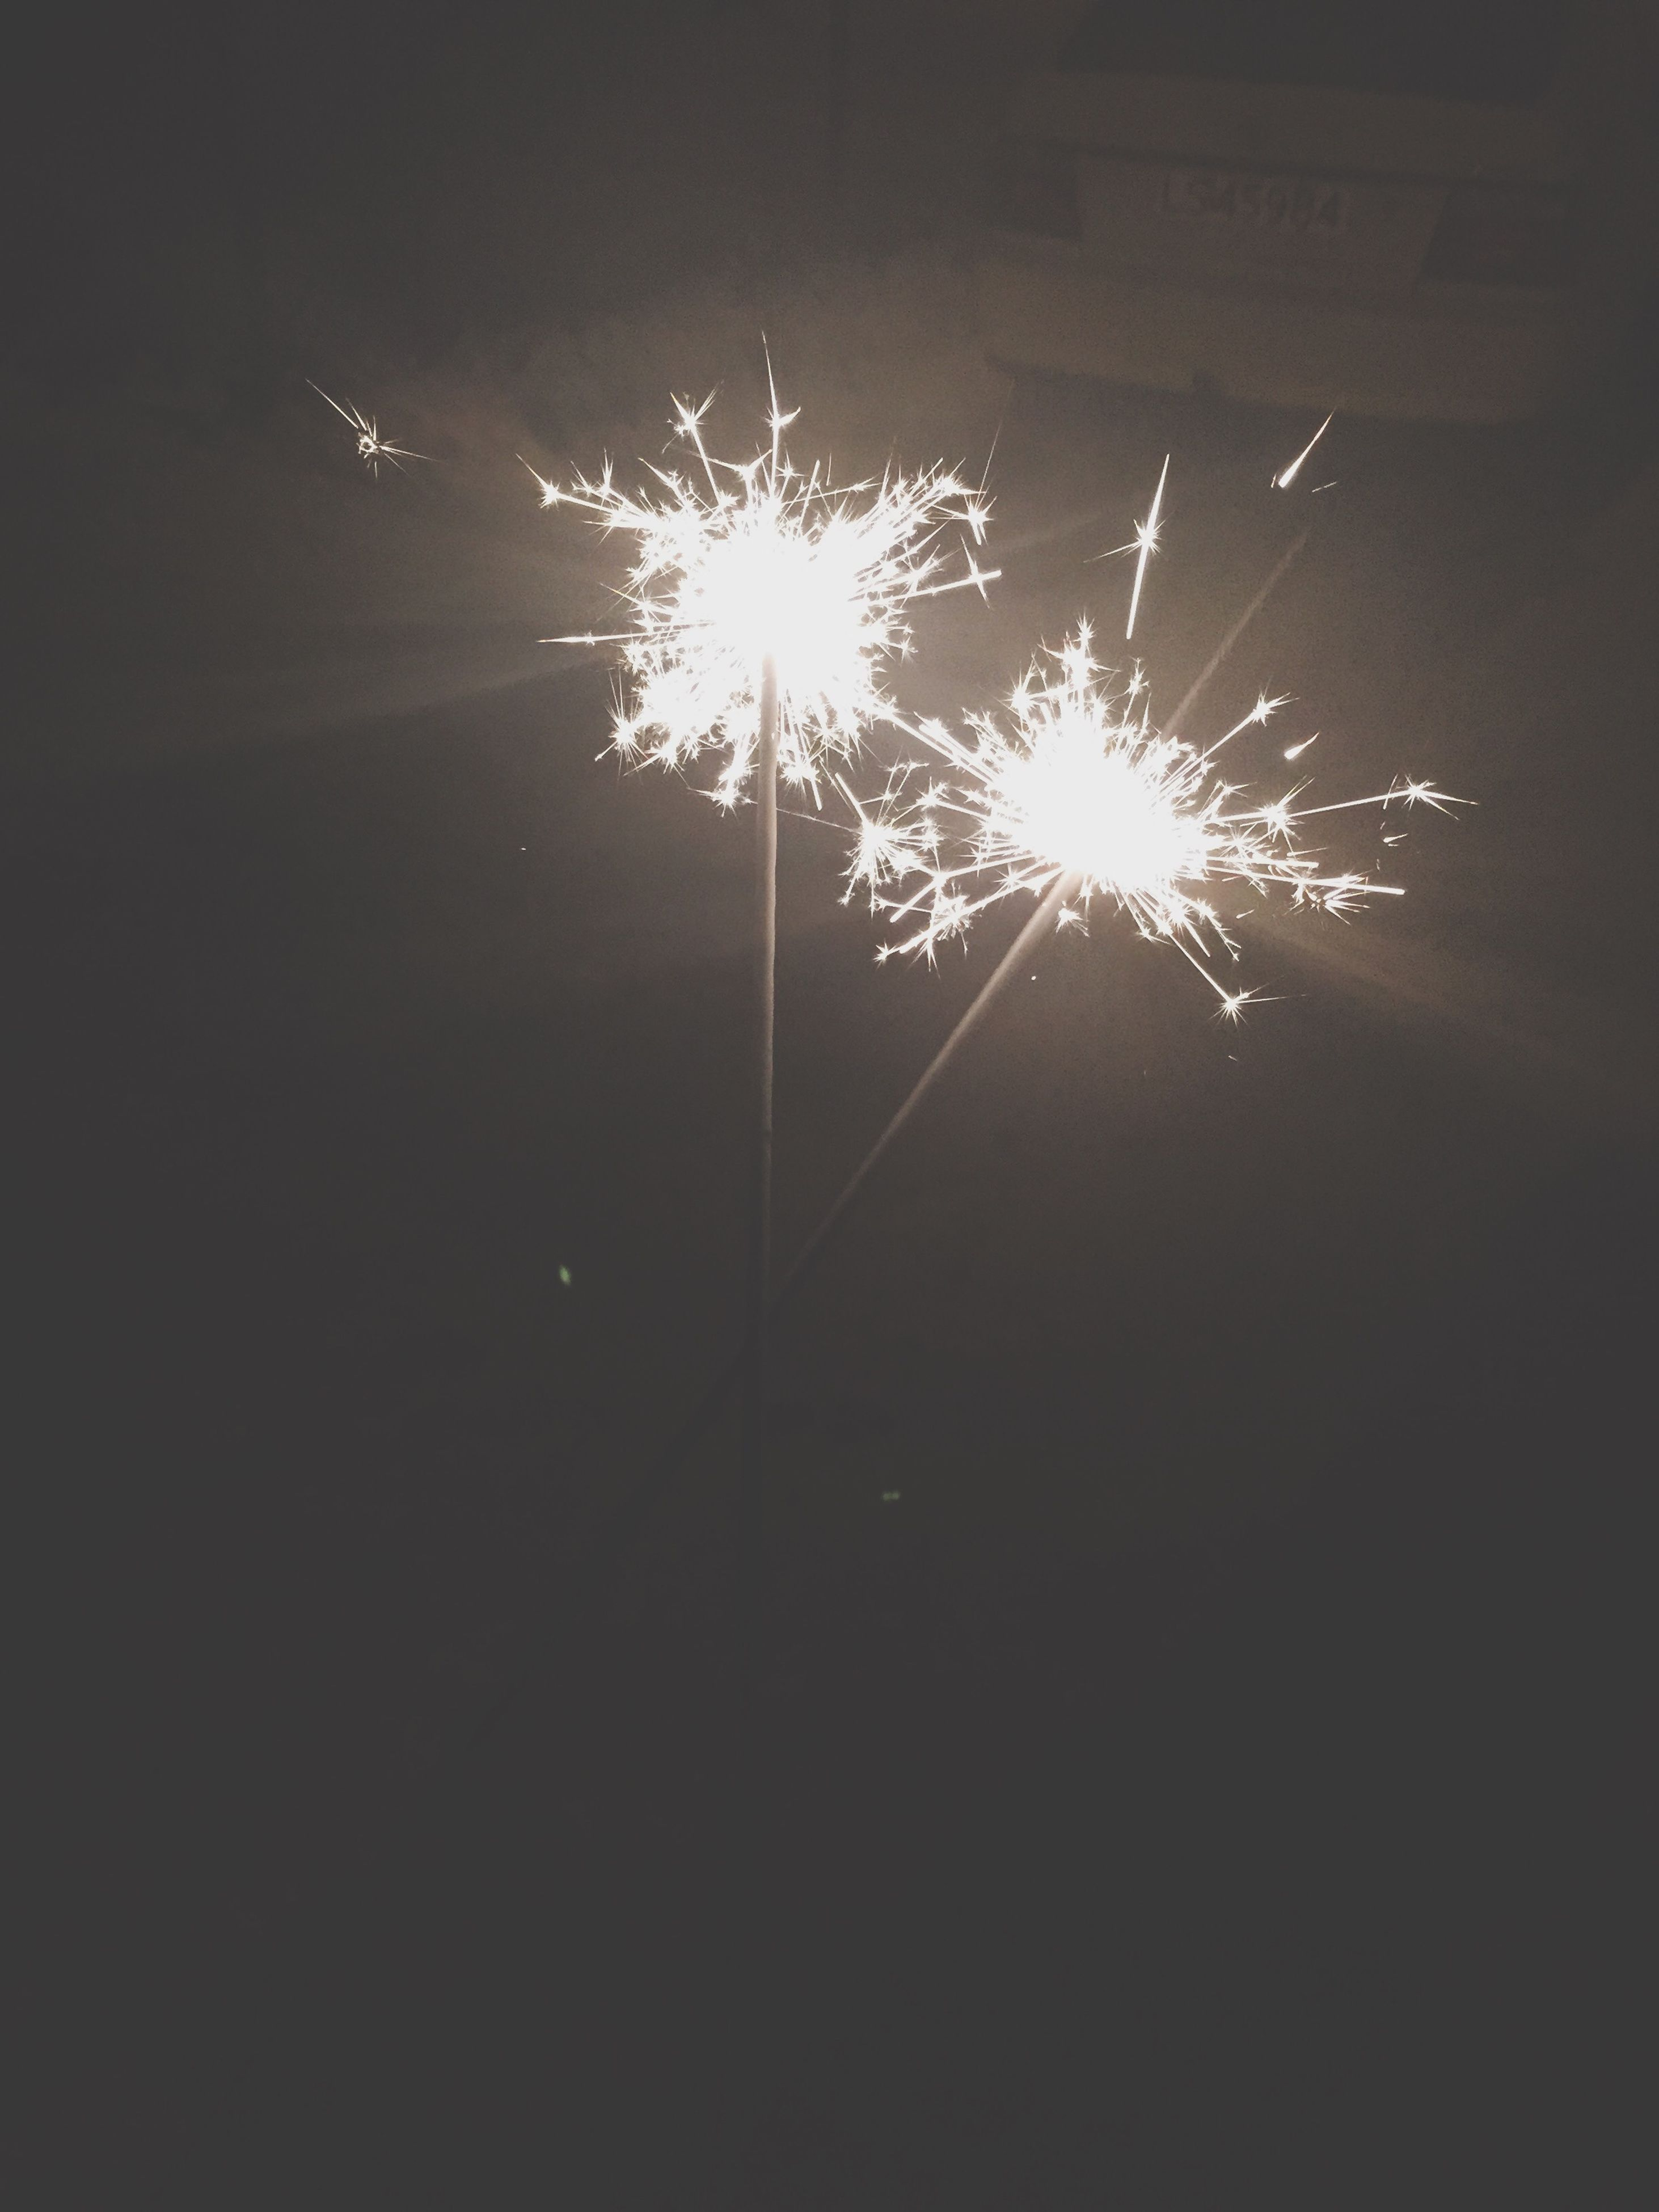 night, illuminated, firework display, exploding, celebration, firework - man made object, glowing, long exposure, sparks, arts culture and entertainment, motion, low angle view, firework, event, fire - natural phenomenon, blurred motion, entertainment, sky, outdoors, light - natural phenomenon